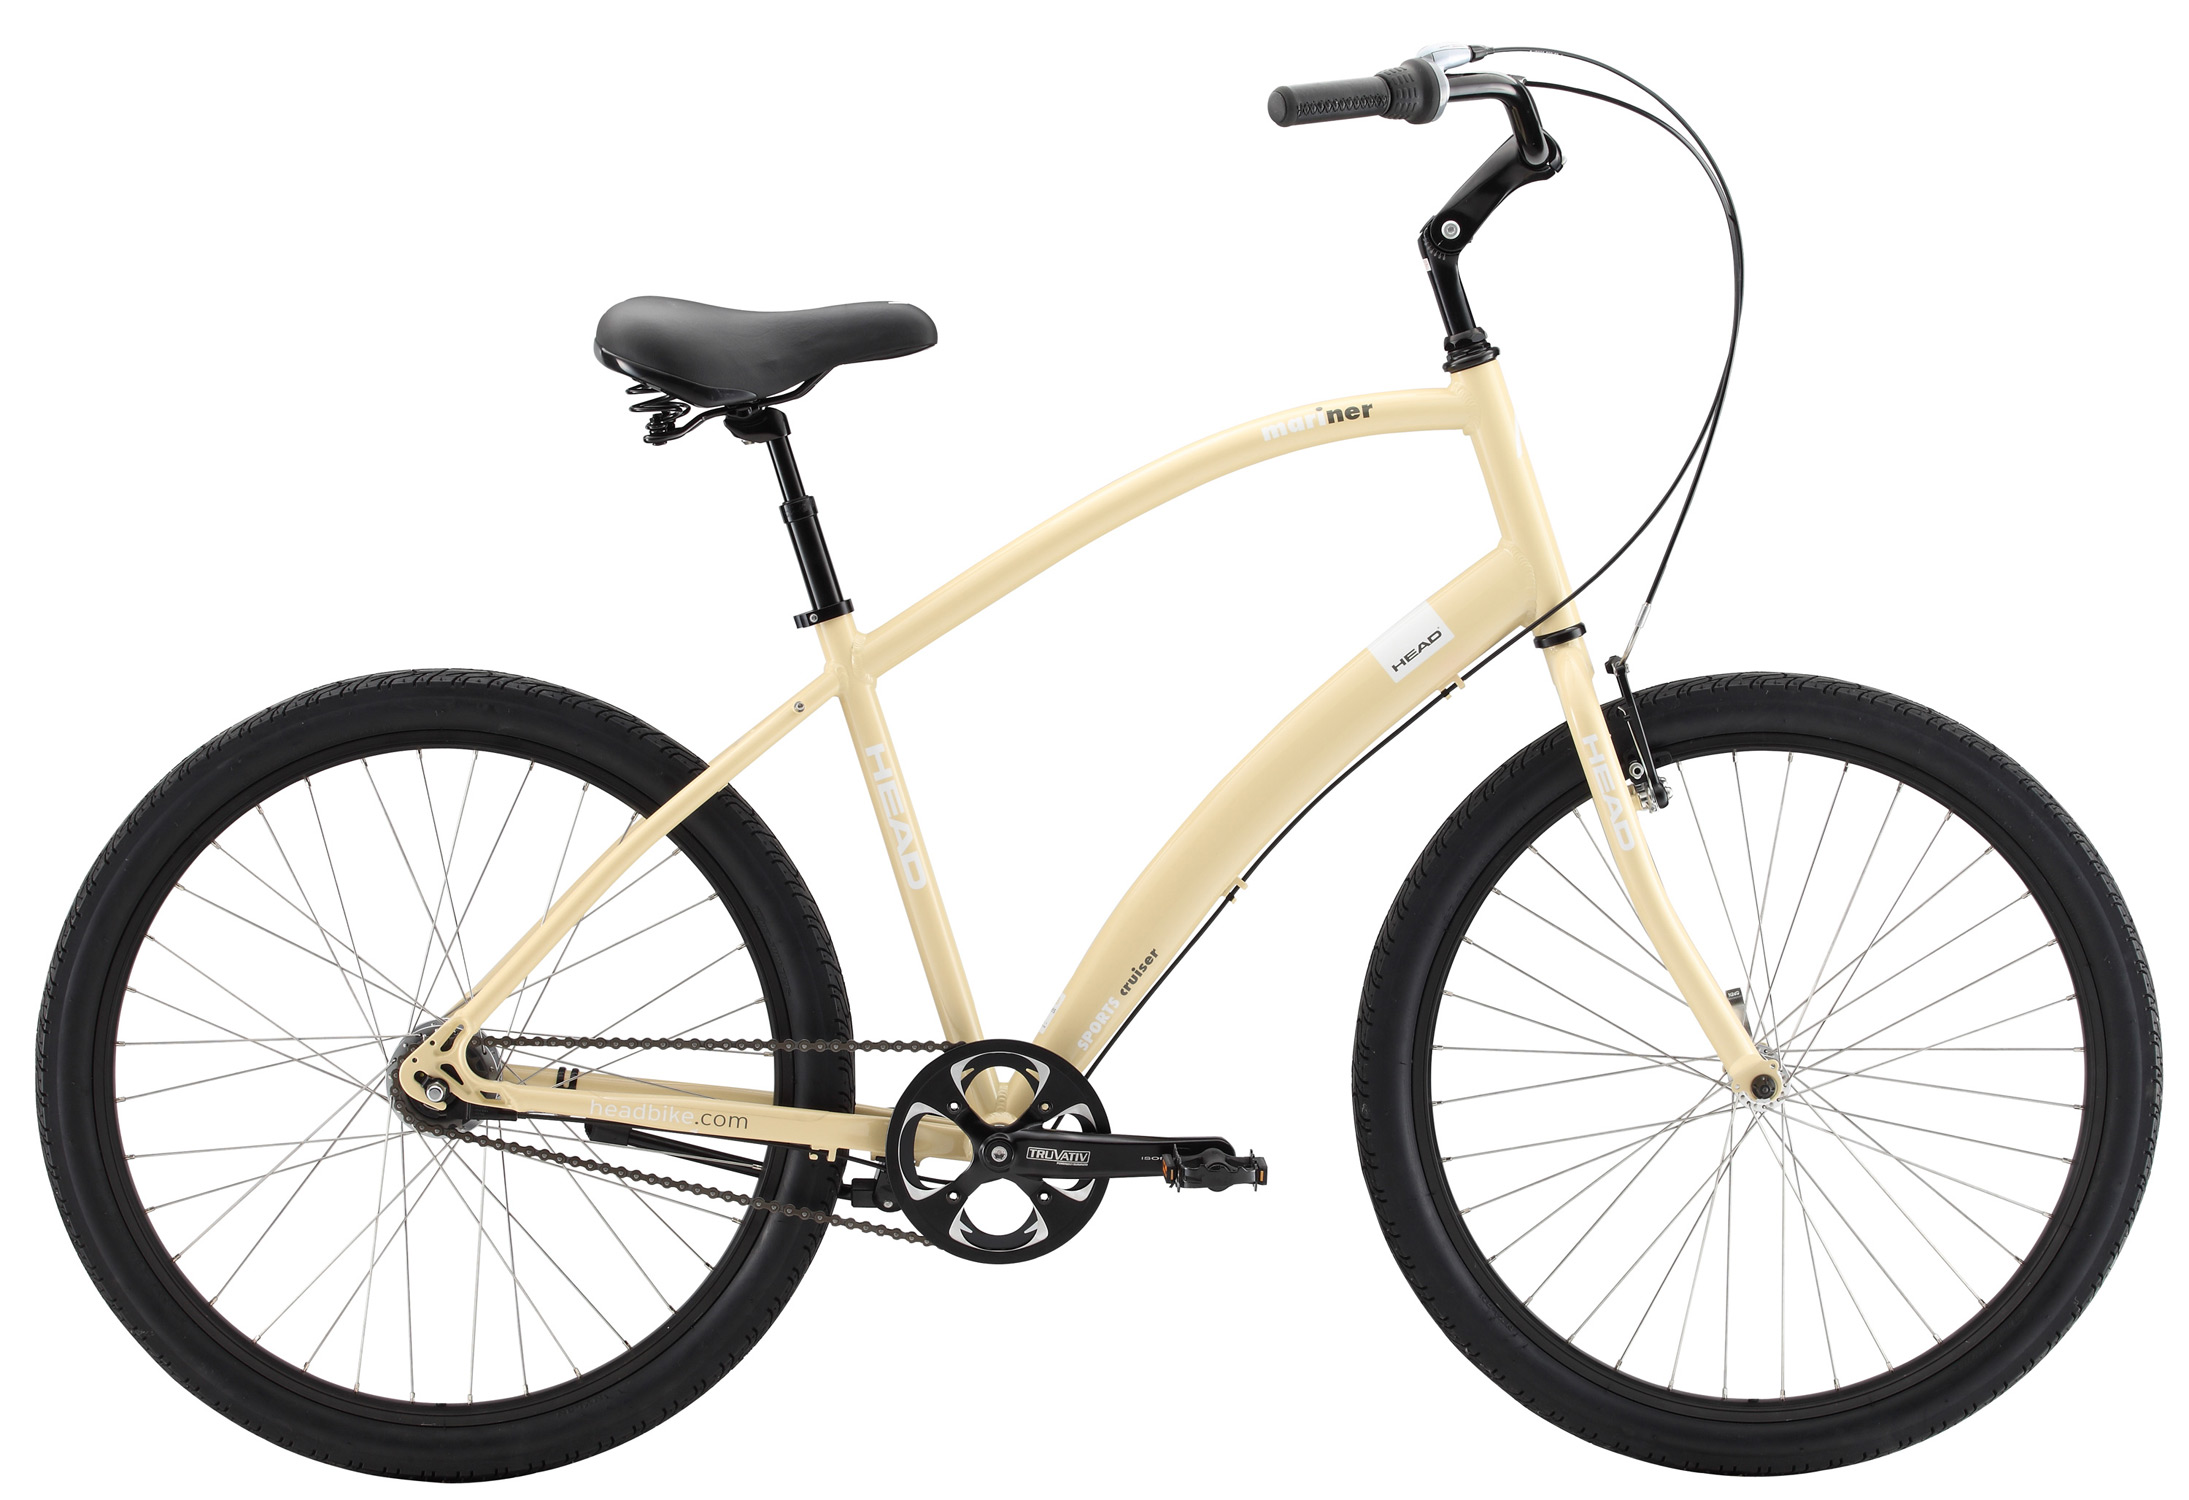 MTB Key Features of the Head Mariner Bike: Shimano Nexus 7 speed 7005 Aluminium frame Comfort seat and suspension seat post Slick Cruiser tire Size; 26''x18''/ 20'' - $659.95